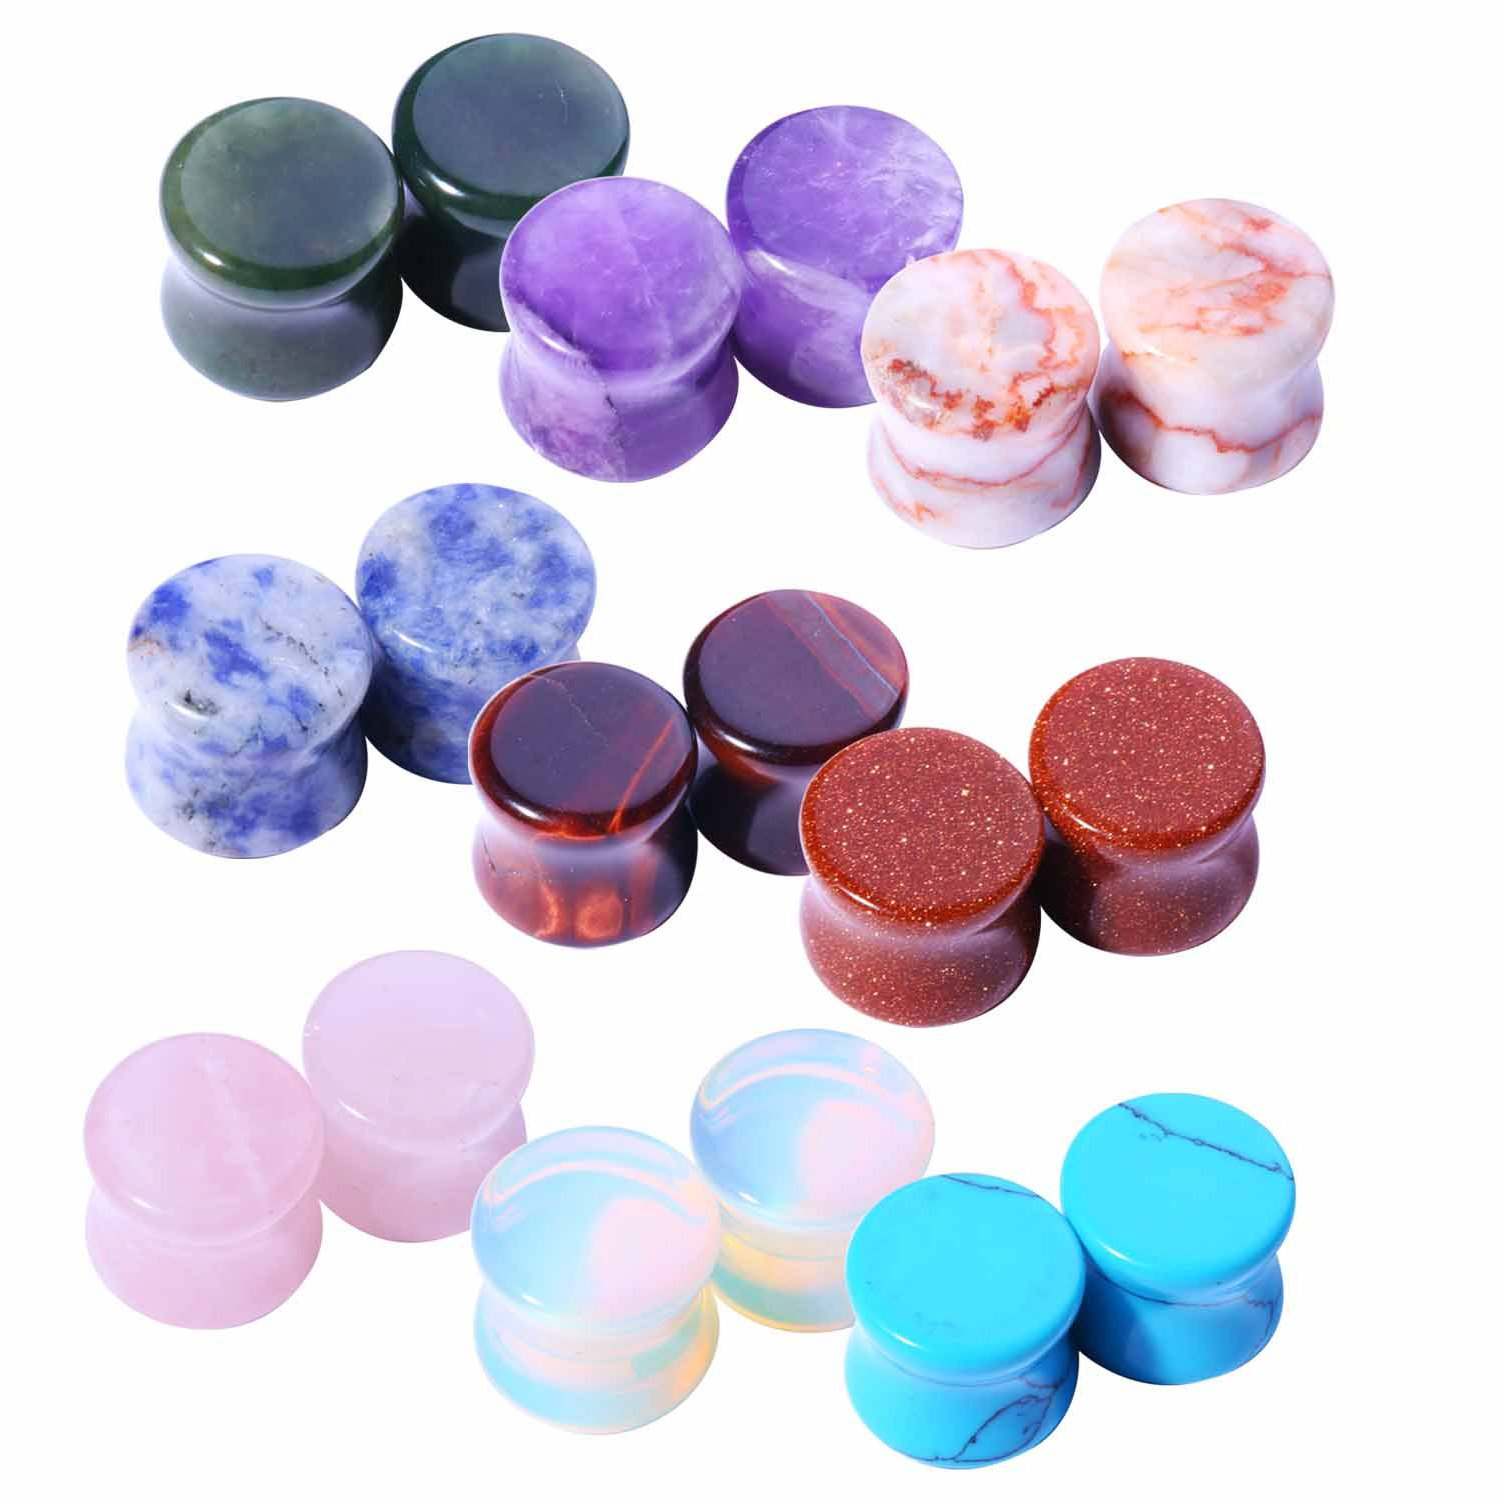 BodyJ4You 18 Pieces Natural Stone Ear Plugs Kit Saddle Style Stretchers Gauges Set 2G (6mm)